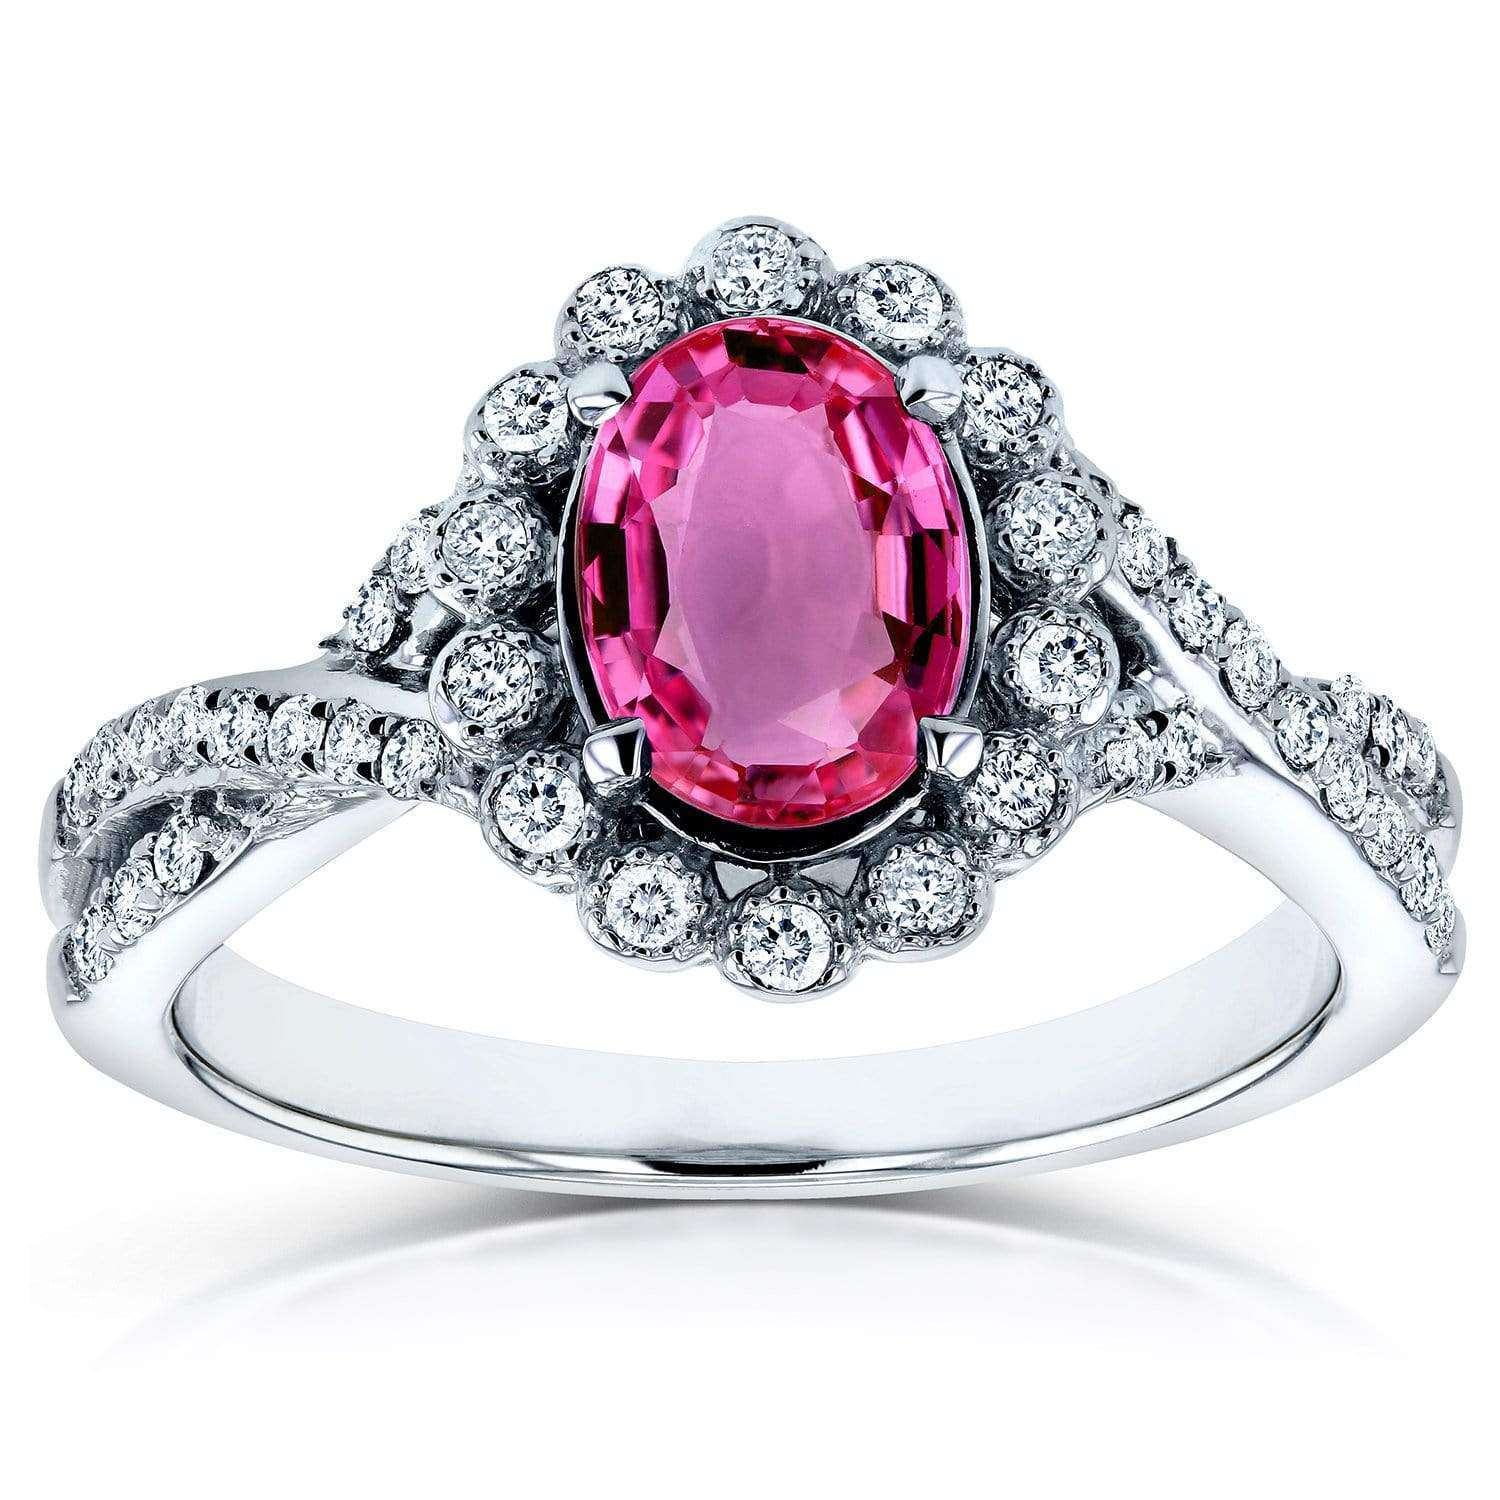 Discounts Oval Pink Sapphire and Diamond Antique Engagement Ring 1 1/4 CTW in 14K White Gold - 10.5